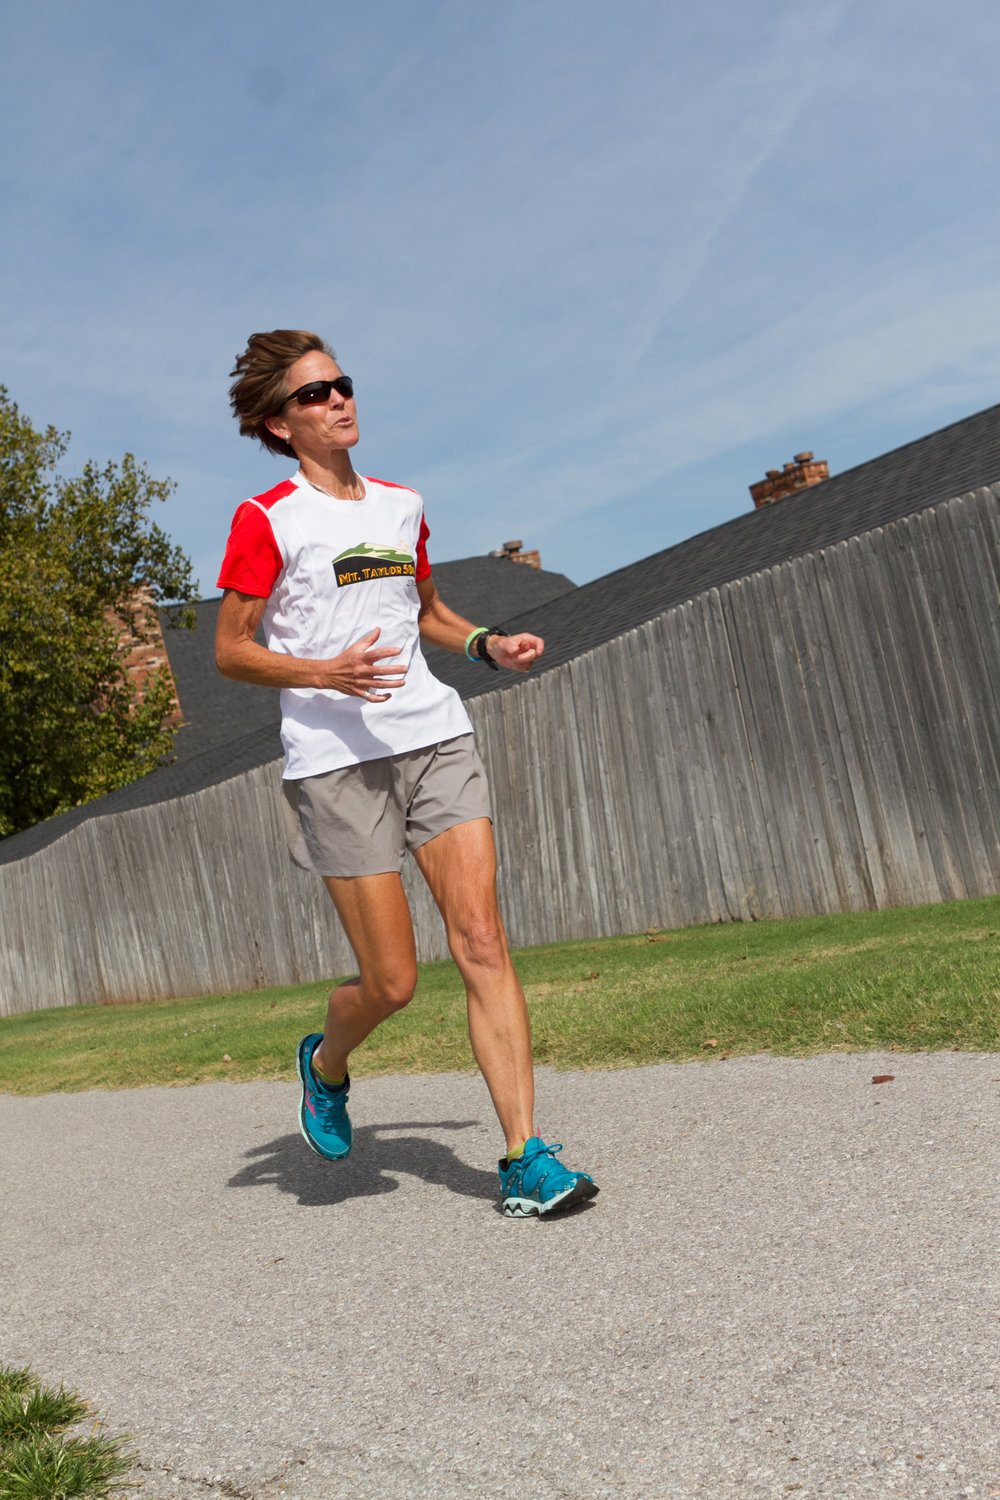 Nancy Shidler, Administrative Director for Pacer Health Services, trains in Oklahoma City Monday afternoon, in preparation to run the New York City Marathon.